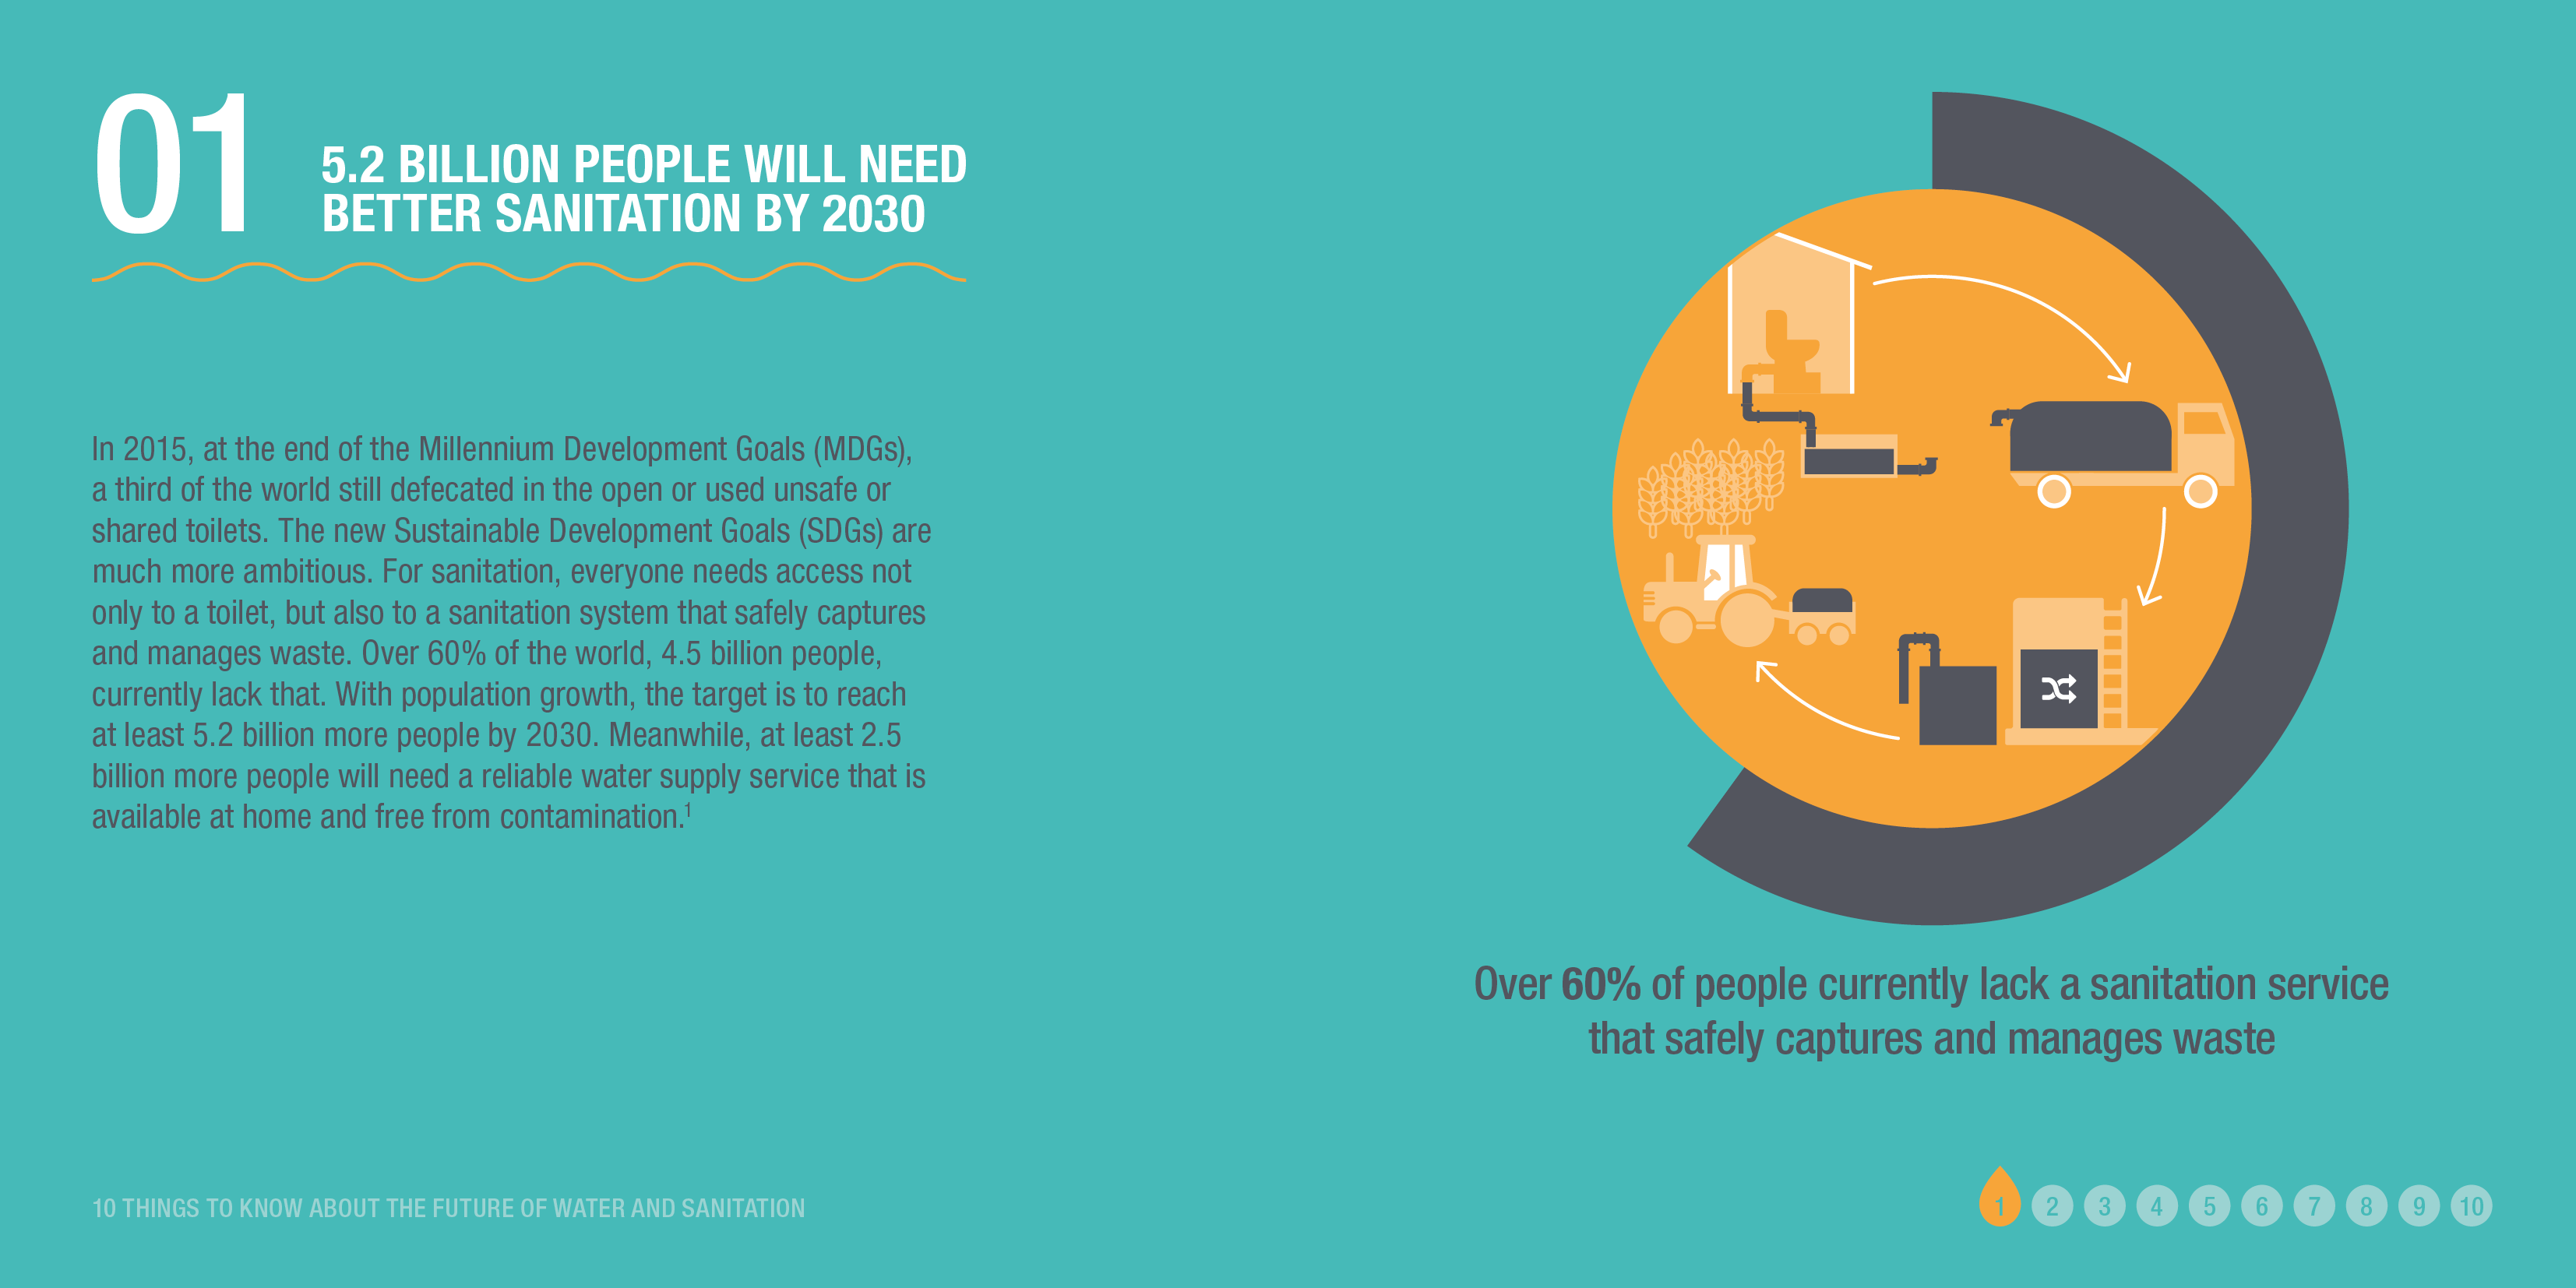 Infographic: 5.2 BILLION PEOPLE WILL NEED BETTER SANITATION BY 2030